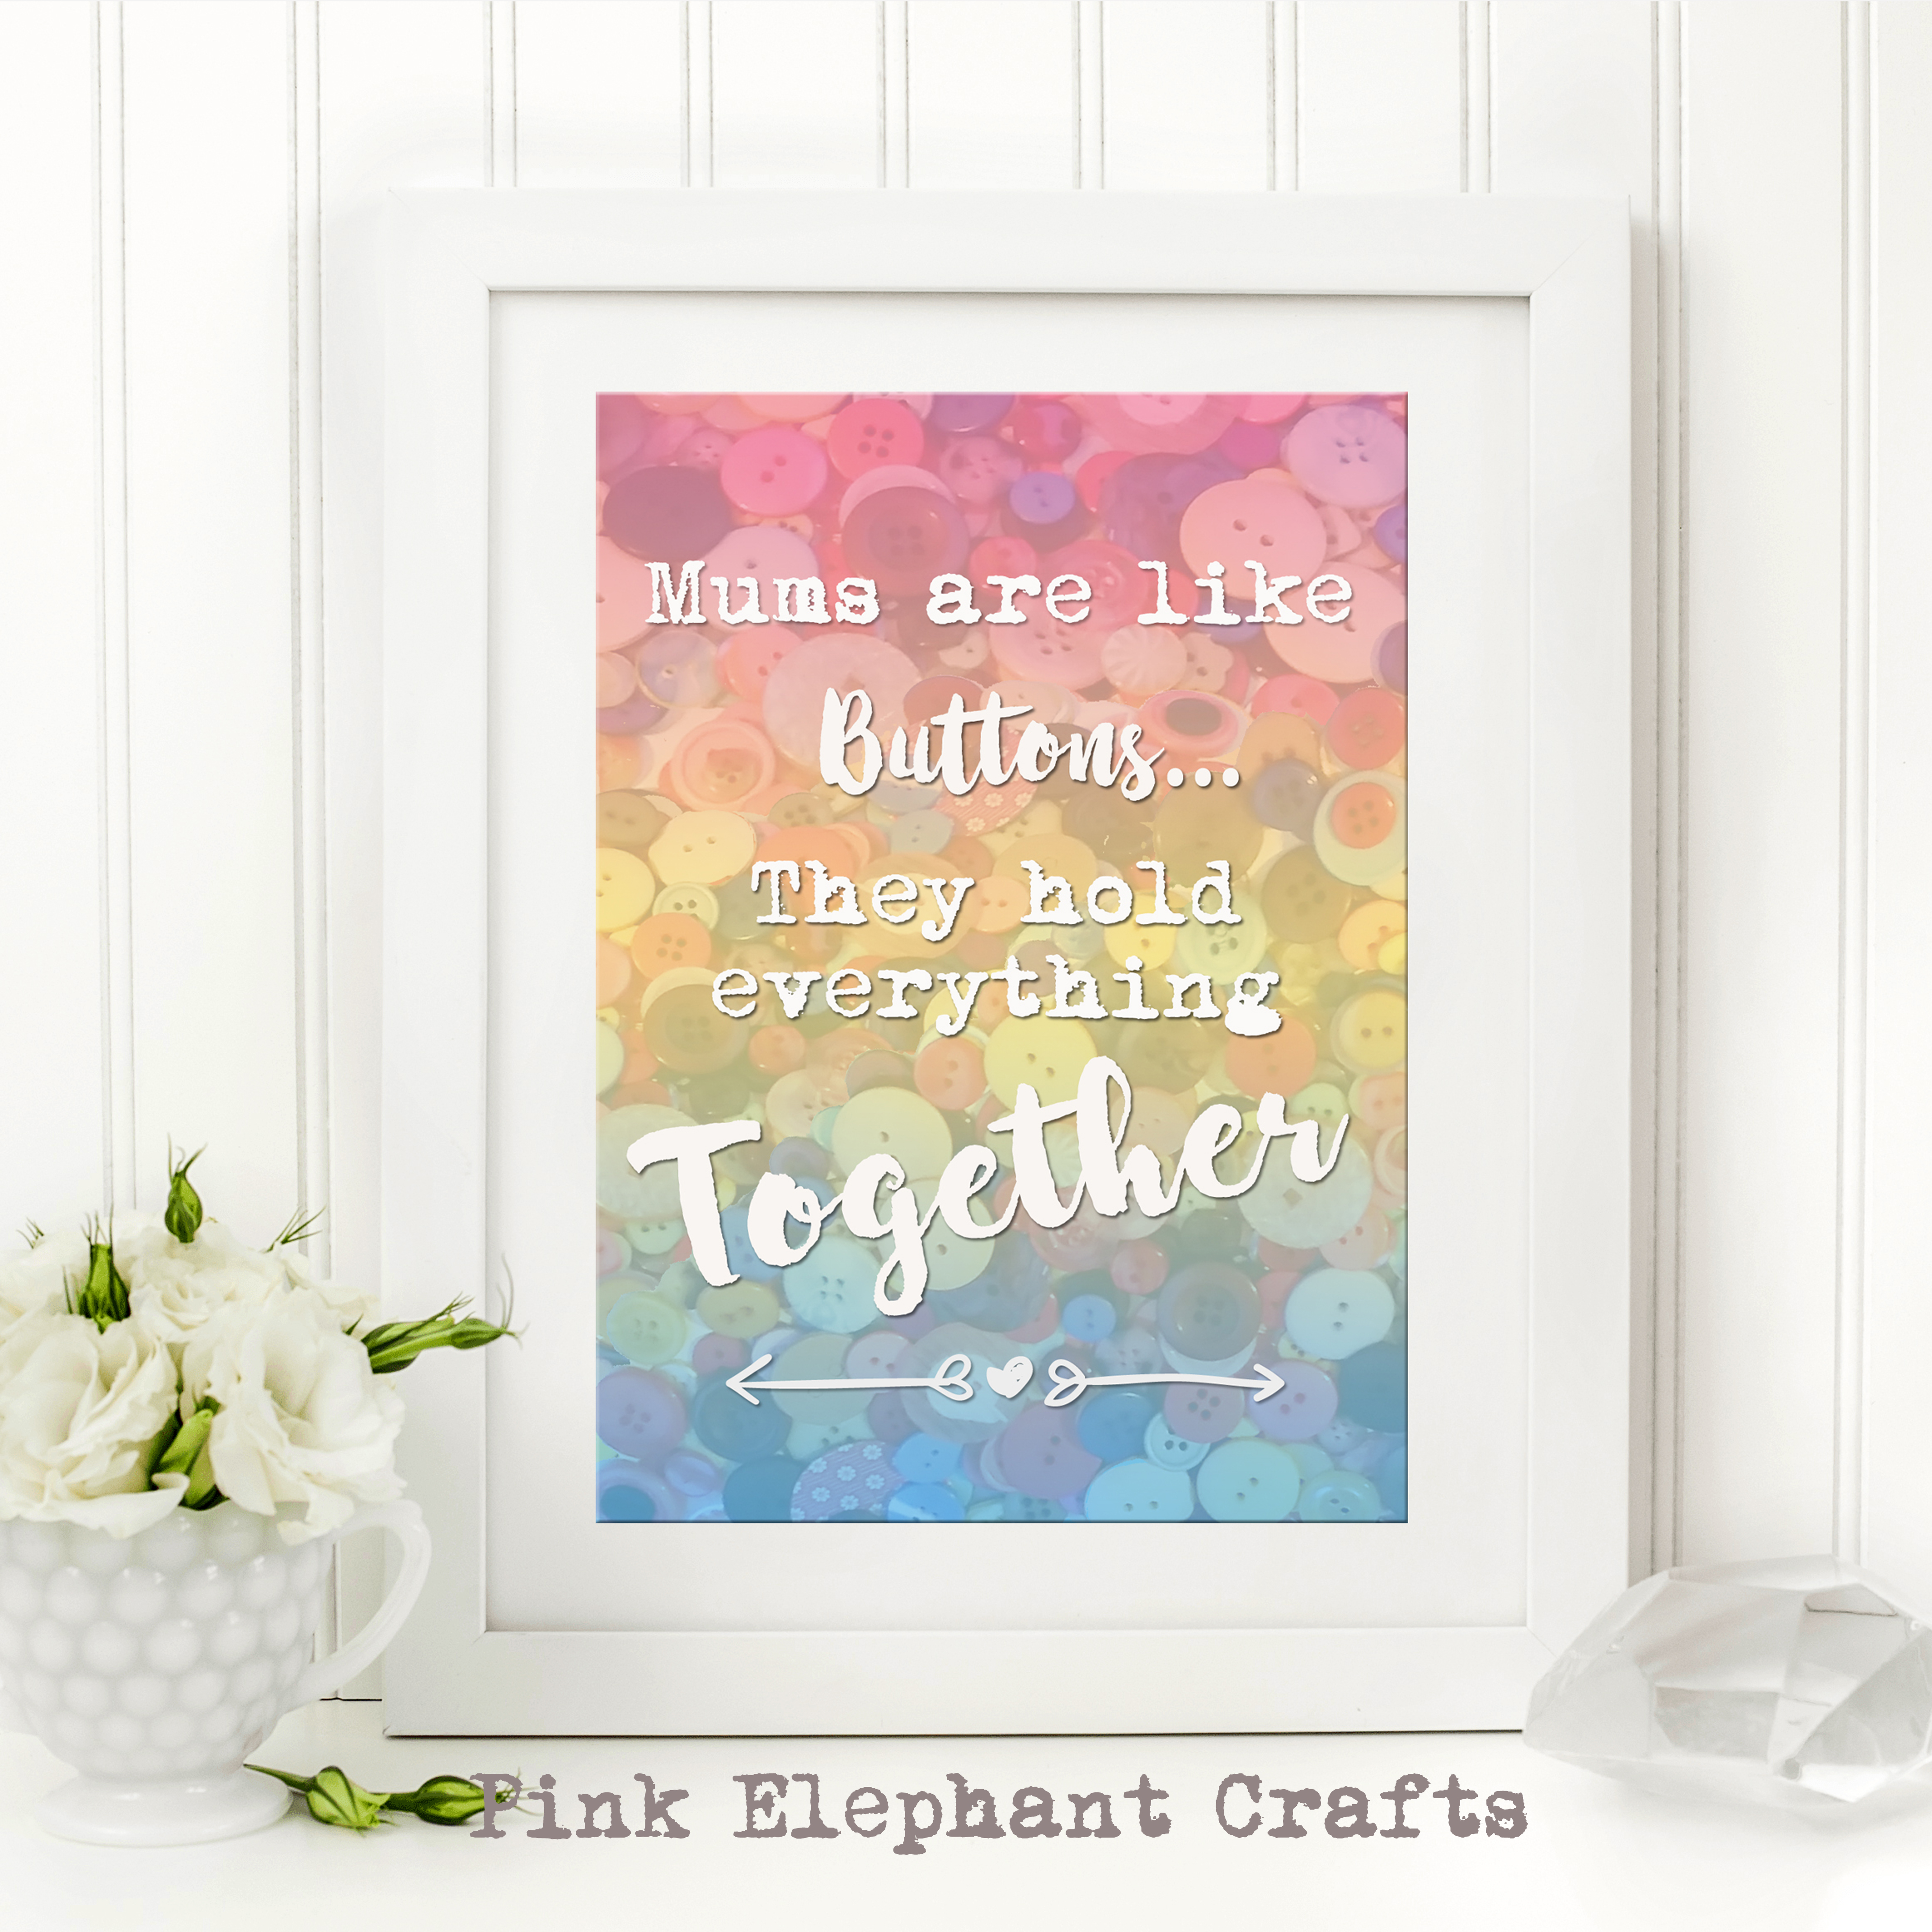 free mothers day printable for framing or cards